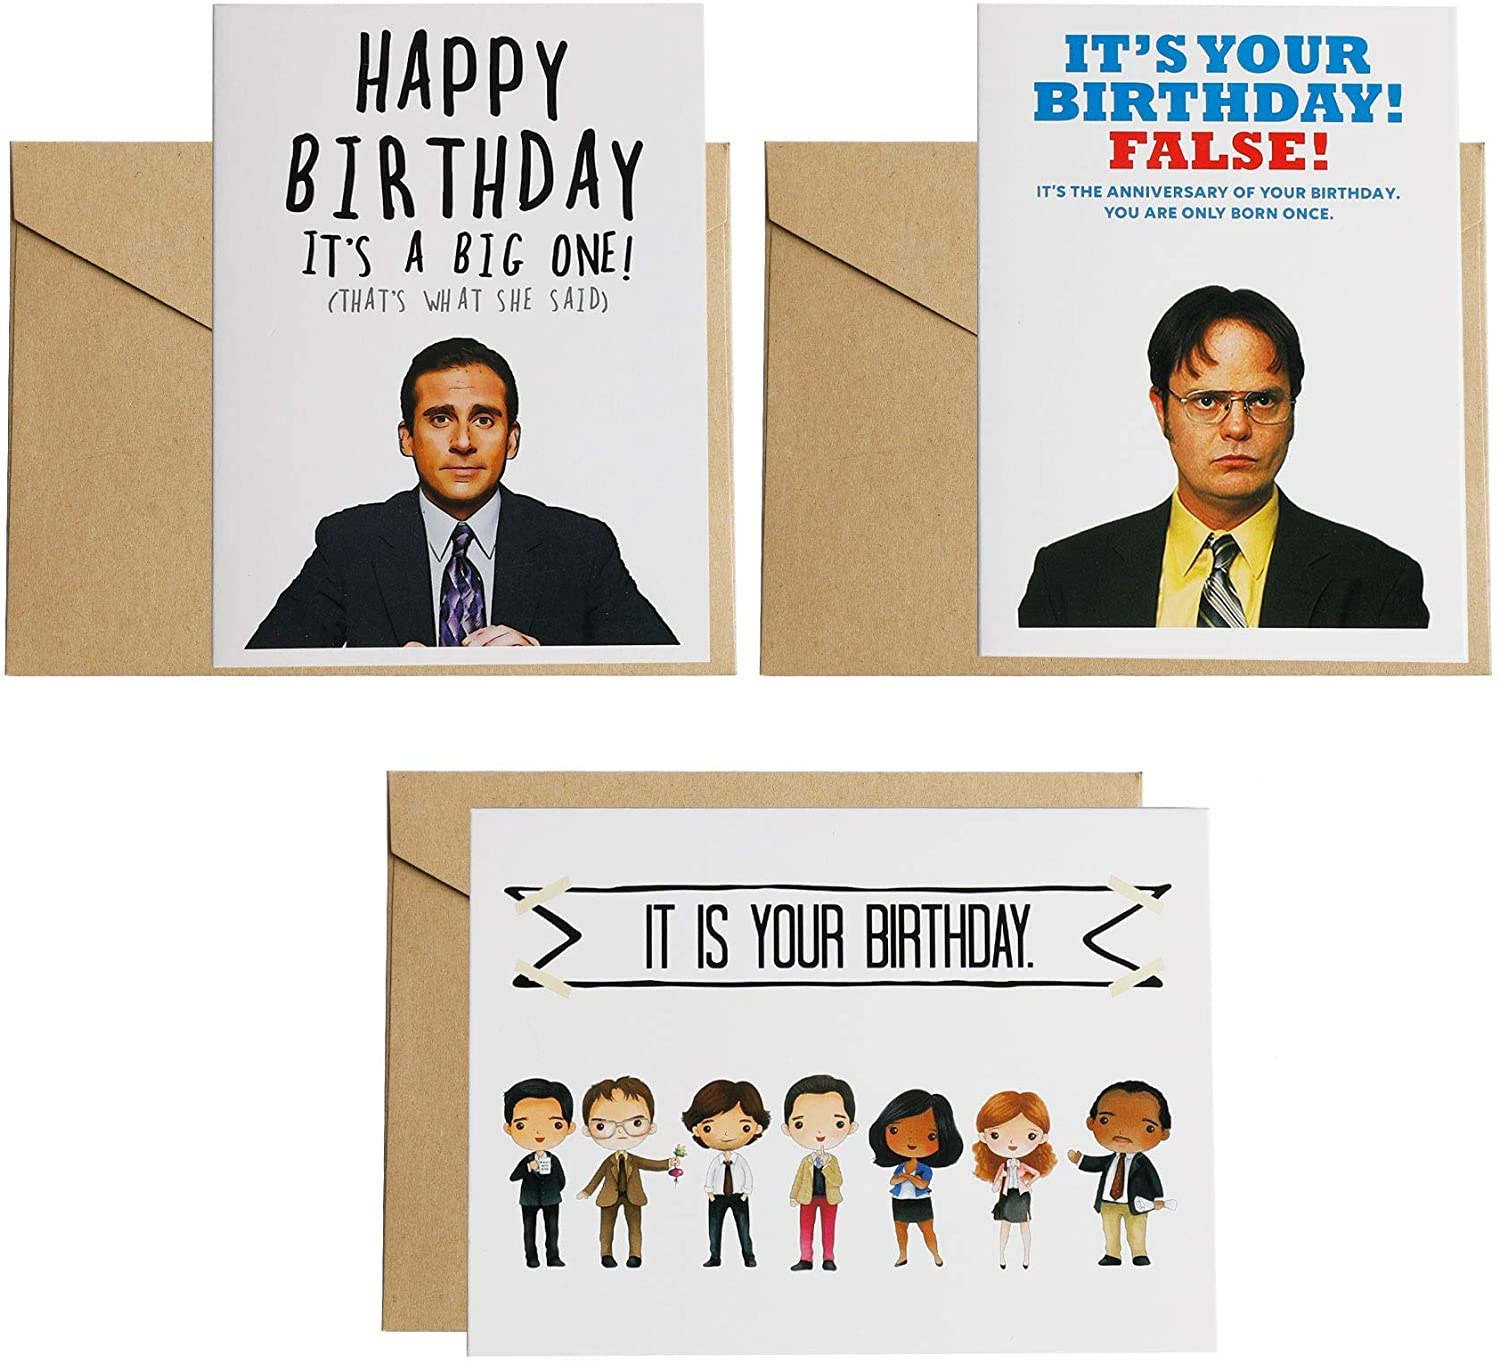 3PCS The Office card ,Dwight Schrute False , It Is Your Birthday,Michael Scott Birthday Card,4.4x6inches,Kraft envelopes